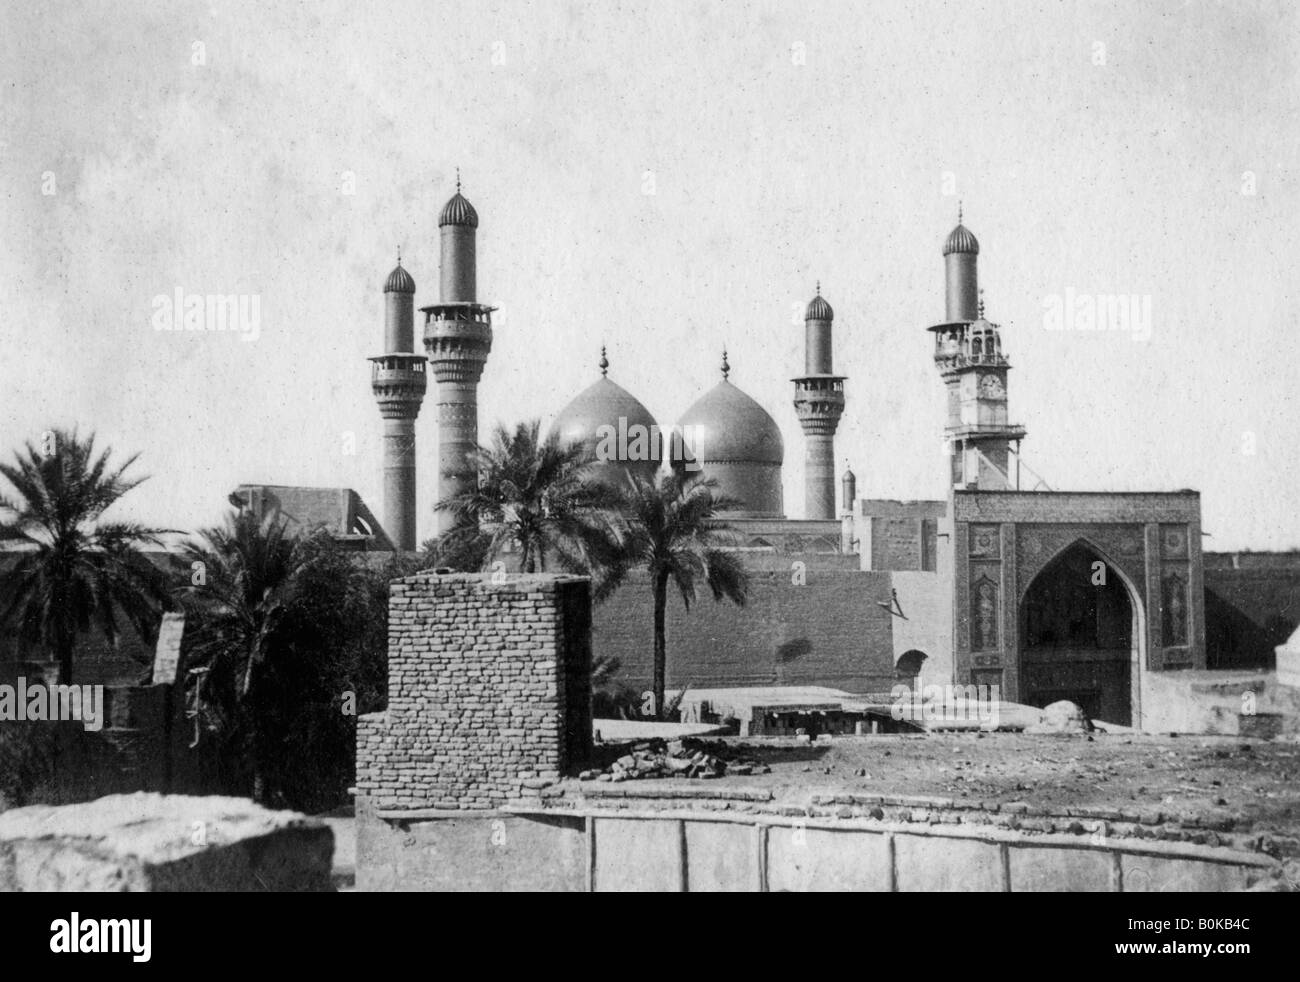 Kazimain mosque, Iraq, 1917-1919. Stock Photo